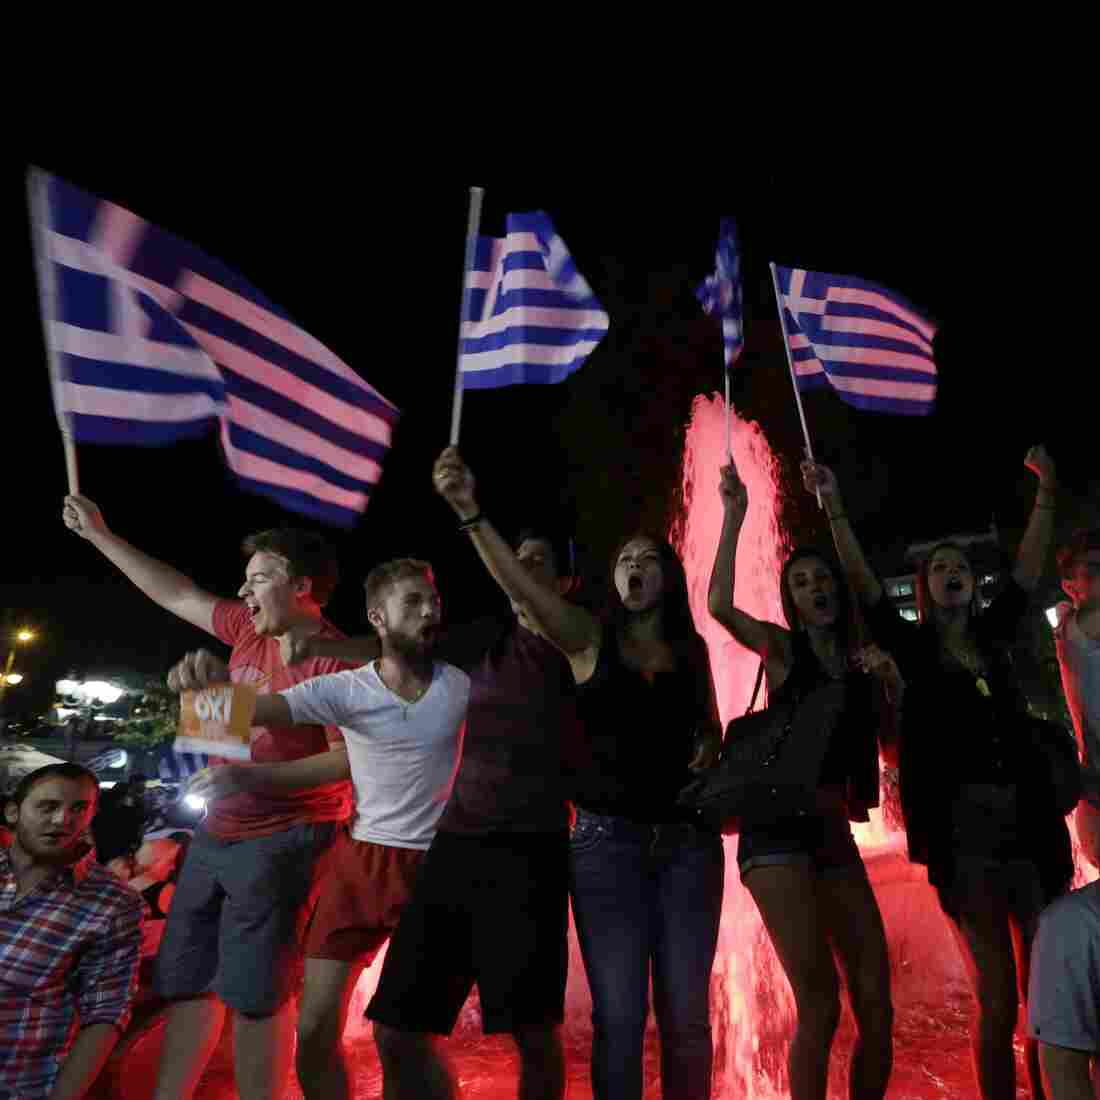 """Greek supporters of the """"no"""" vote celebrate at Syntagma Square in Athens on Sunday night after the results were announced. Greeks overwhelmingly rejected the demands of creditors for more austerity in return for rescue loans. But the country has no clear way out of its financial crisis."""